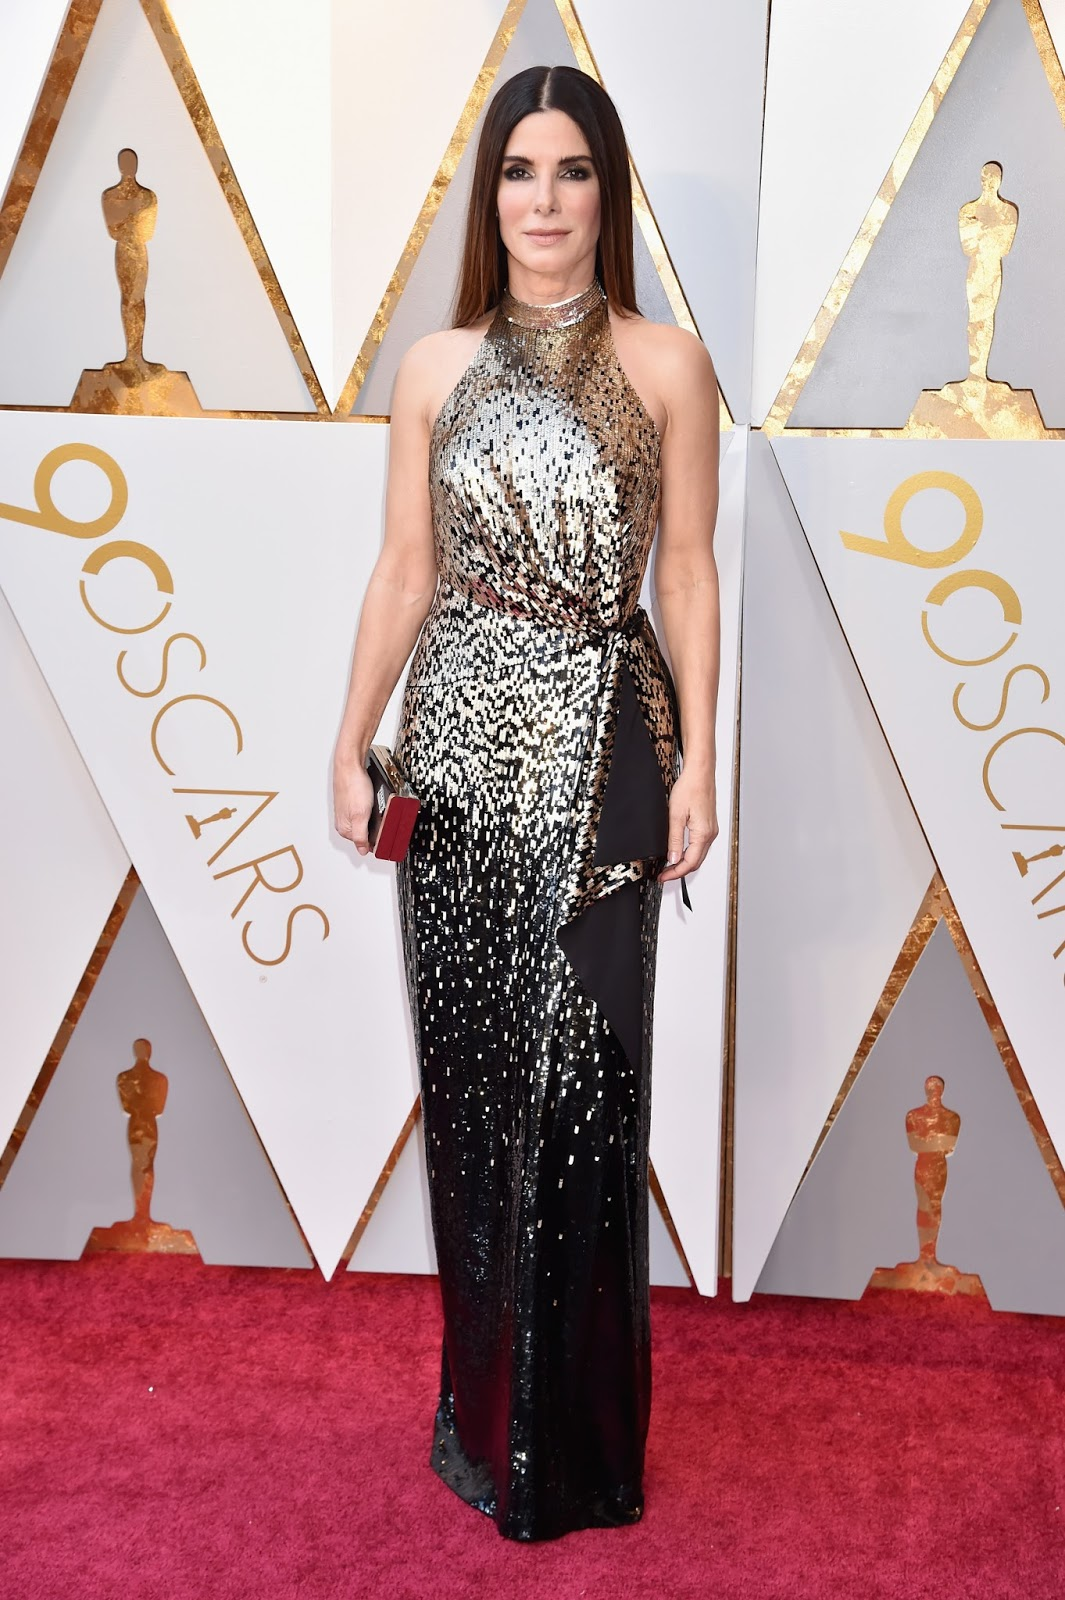 Sandra Bullock is a metallic bombshell at the 2018 Oscars